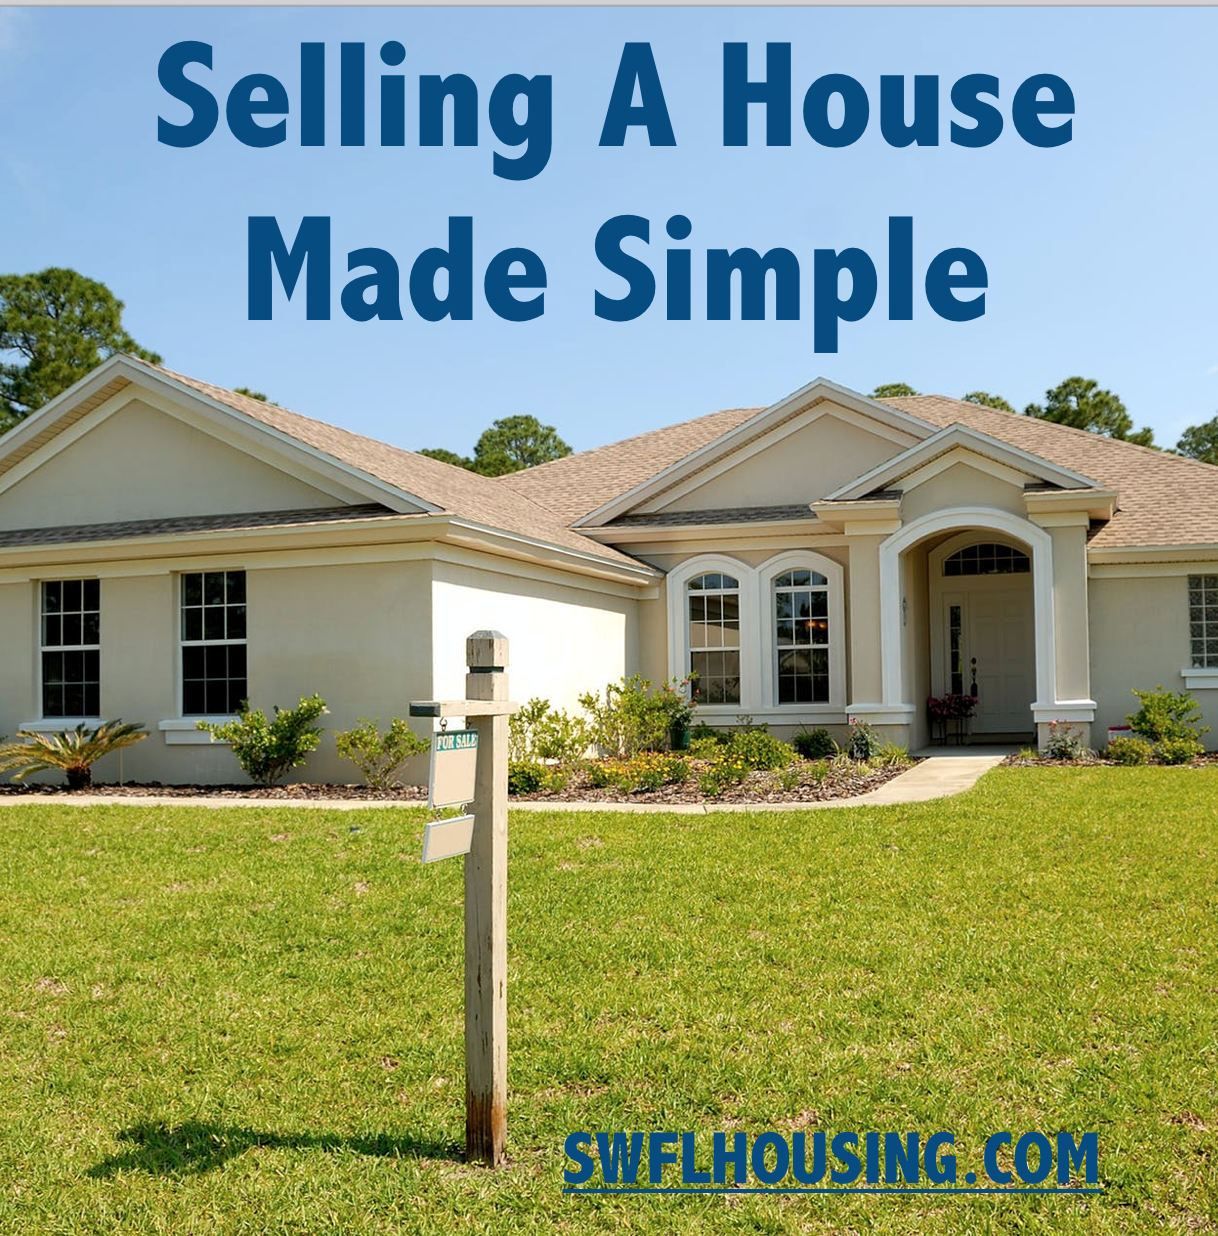 SELLING A HOUSE IN BONITA SPRINGS HOW TO SELL A HOUSE I WANT TO SELL A HOUSE HOME SELLING TIPS TIPS